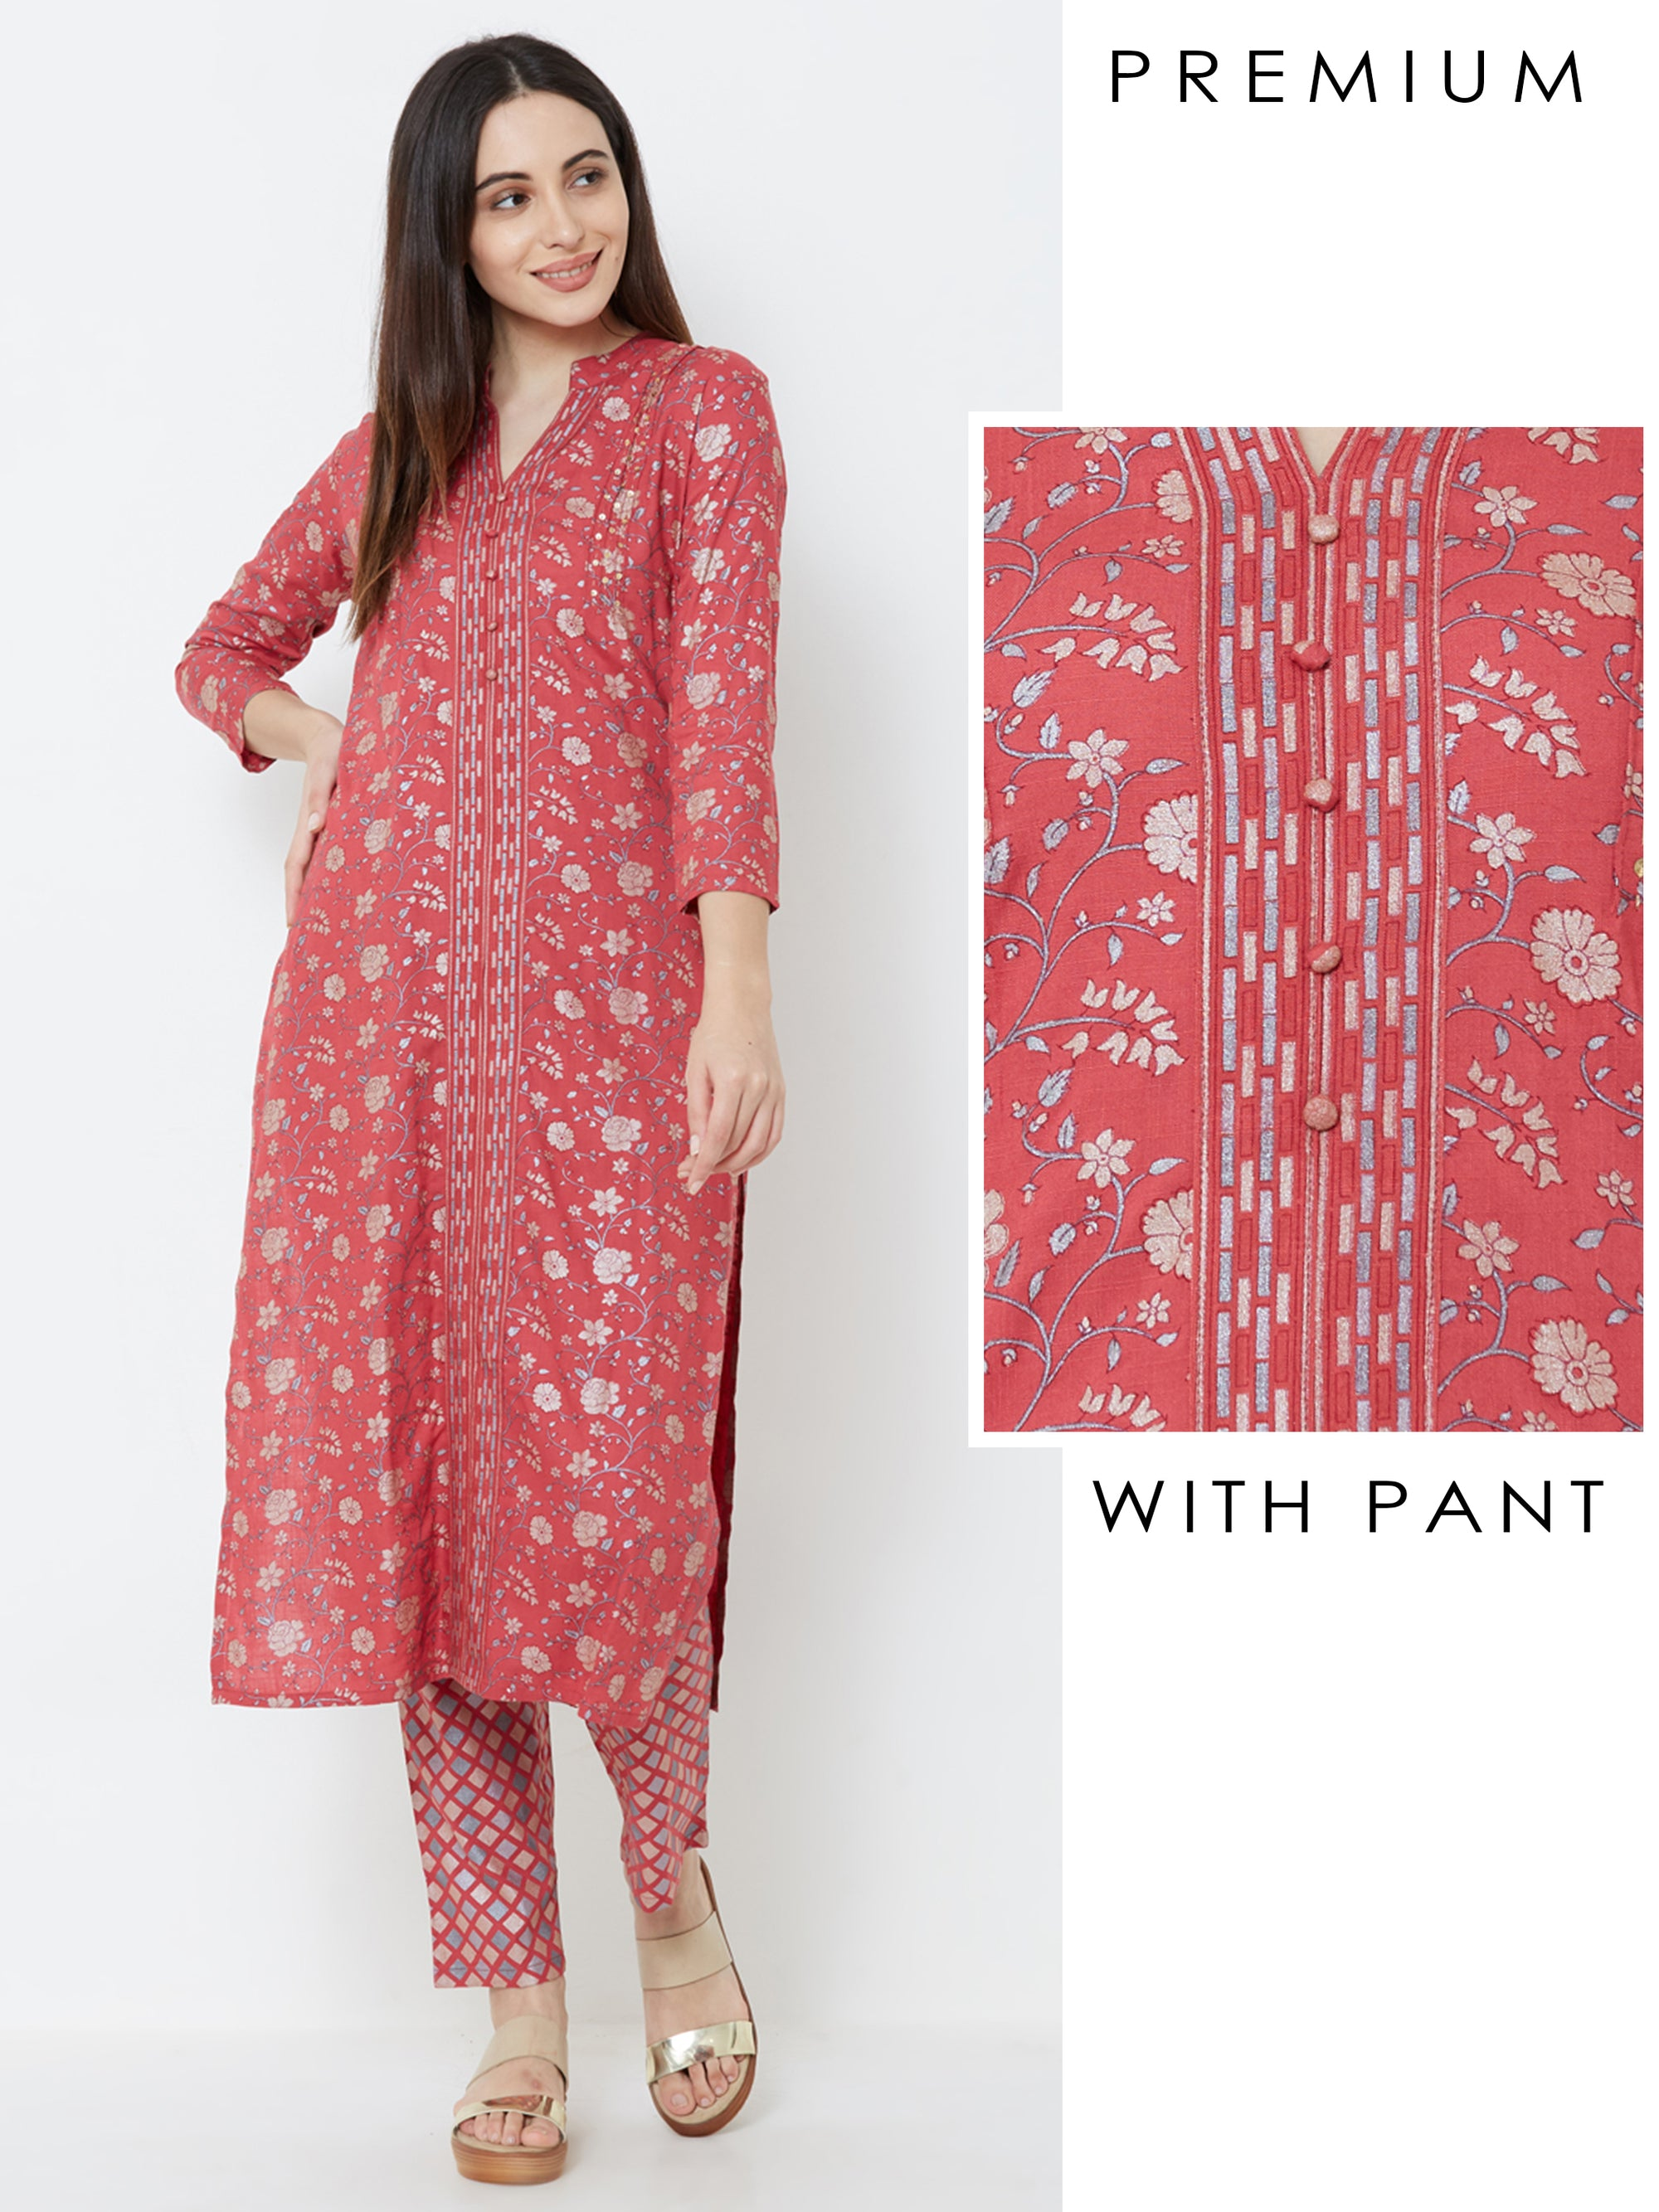 Floral Printed & Sequins Embellished Kurta with Foil Checkered Pant – Maroon